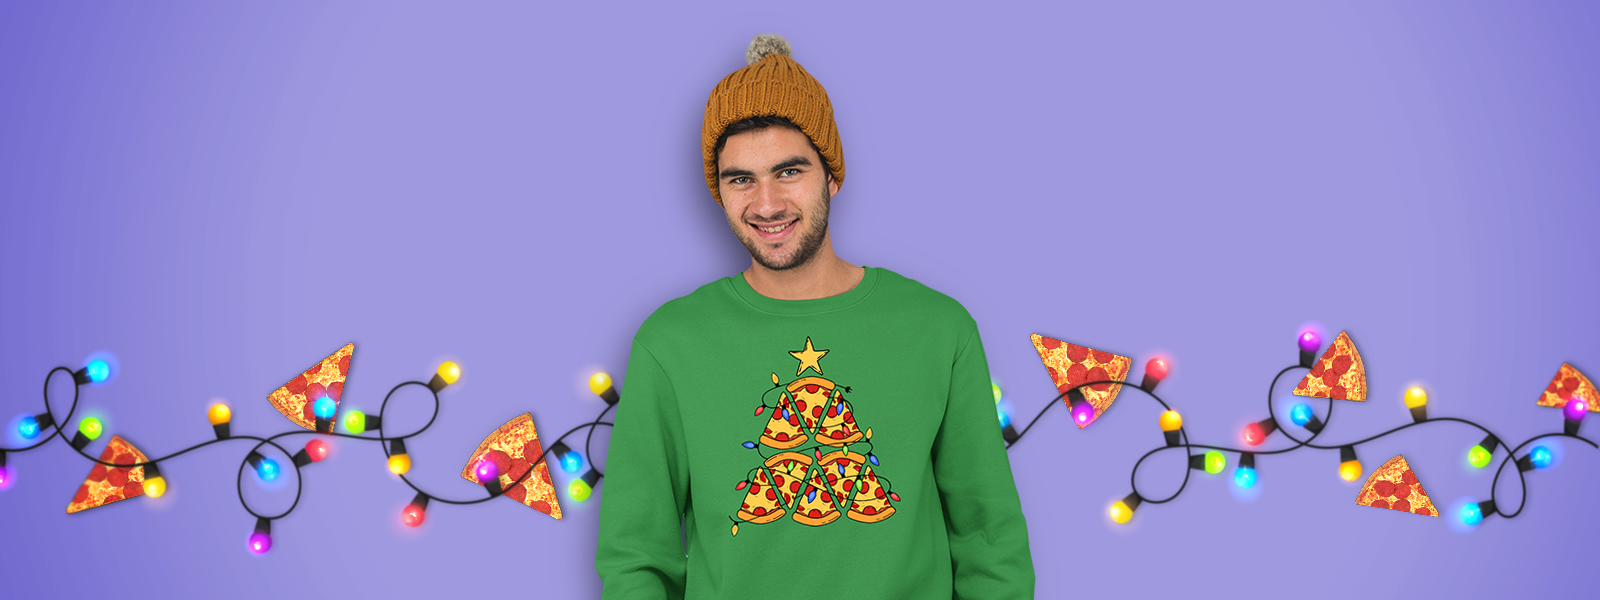 Best Christmas Clothes and Funny Sweaters